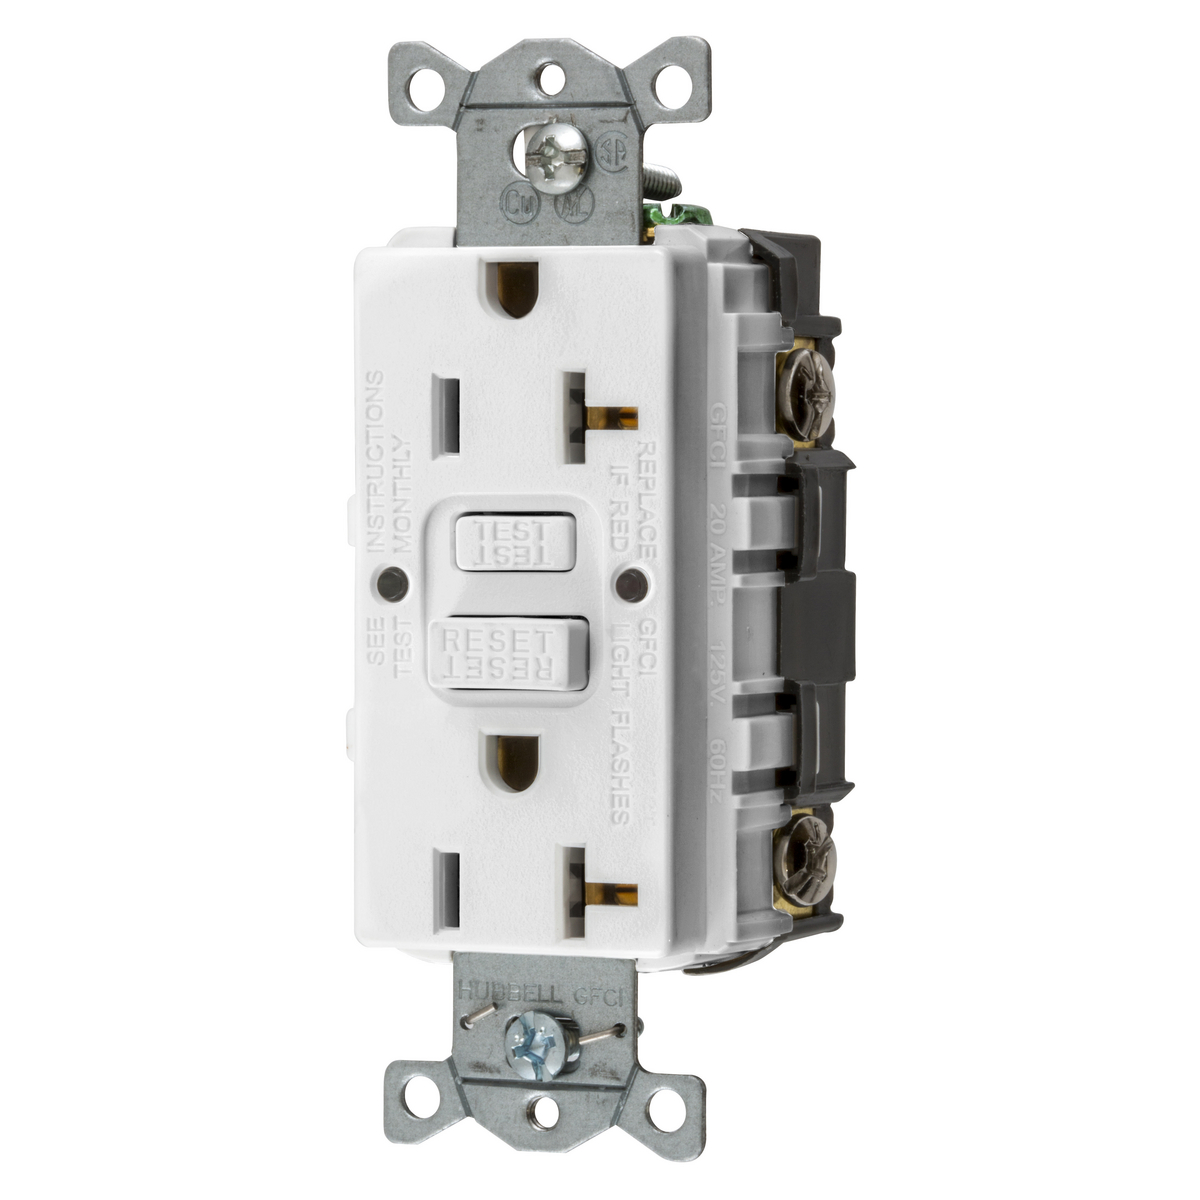 Hubbell GFRST20W 20A GFCI Receptacle, Self-Test, 125V 2P3W - White